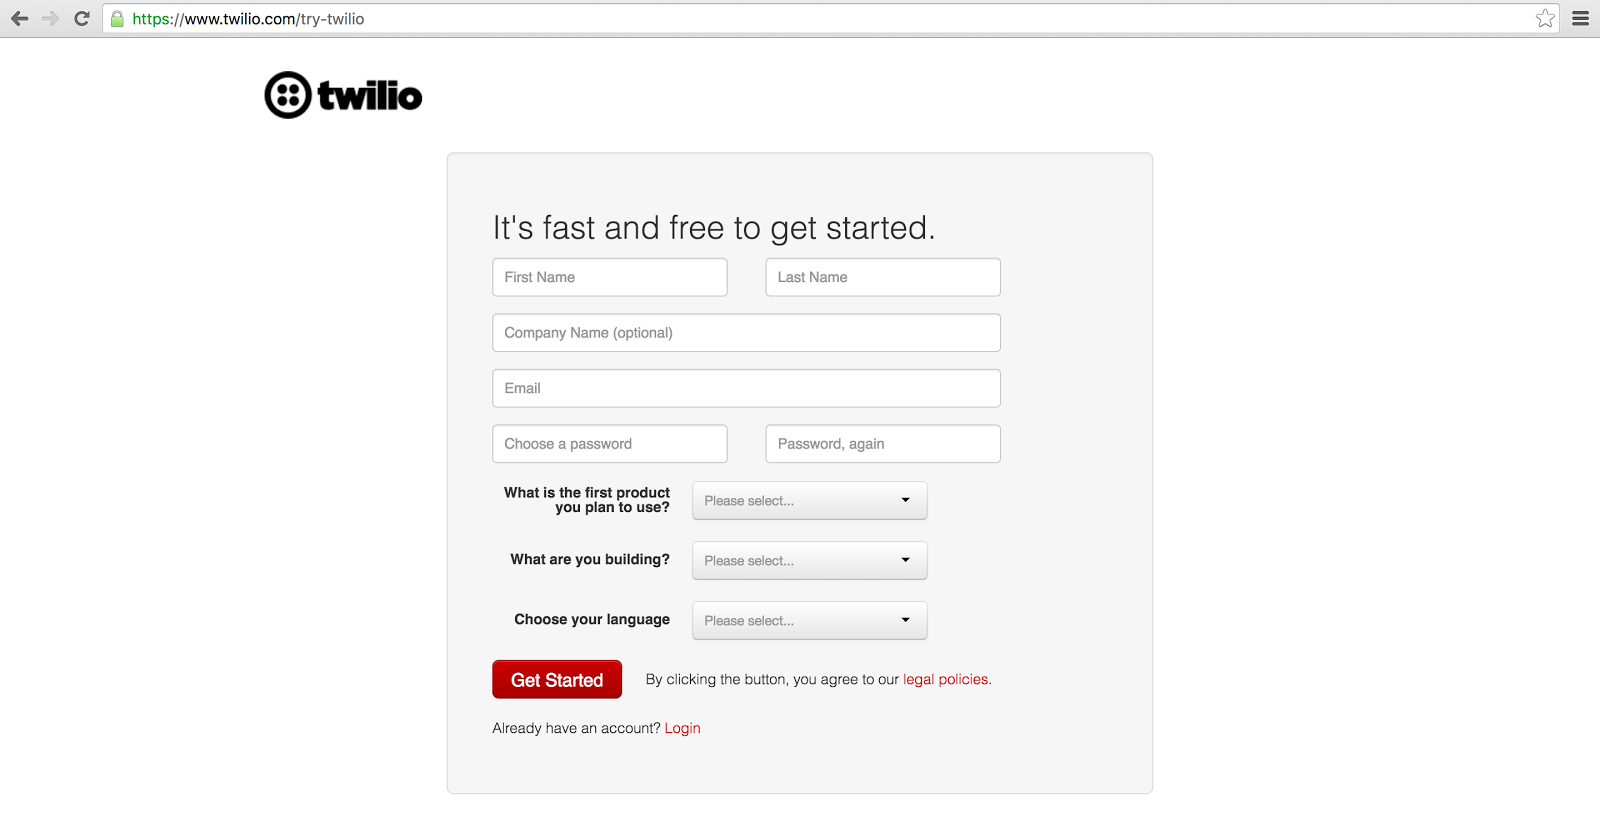 Twilio sign up screen.